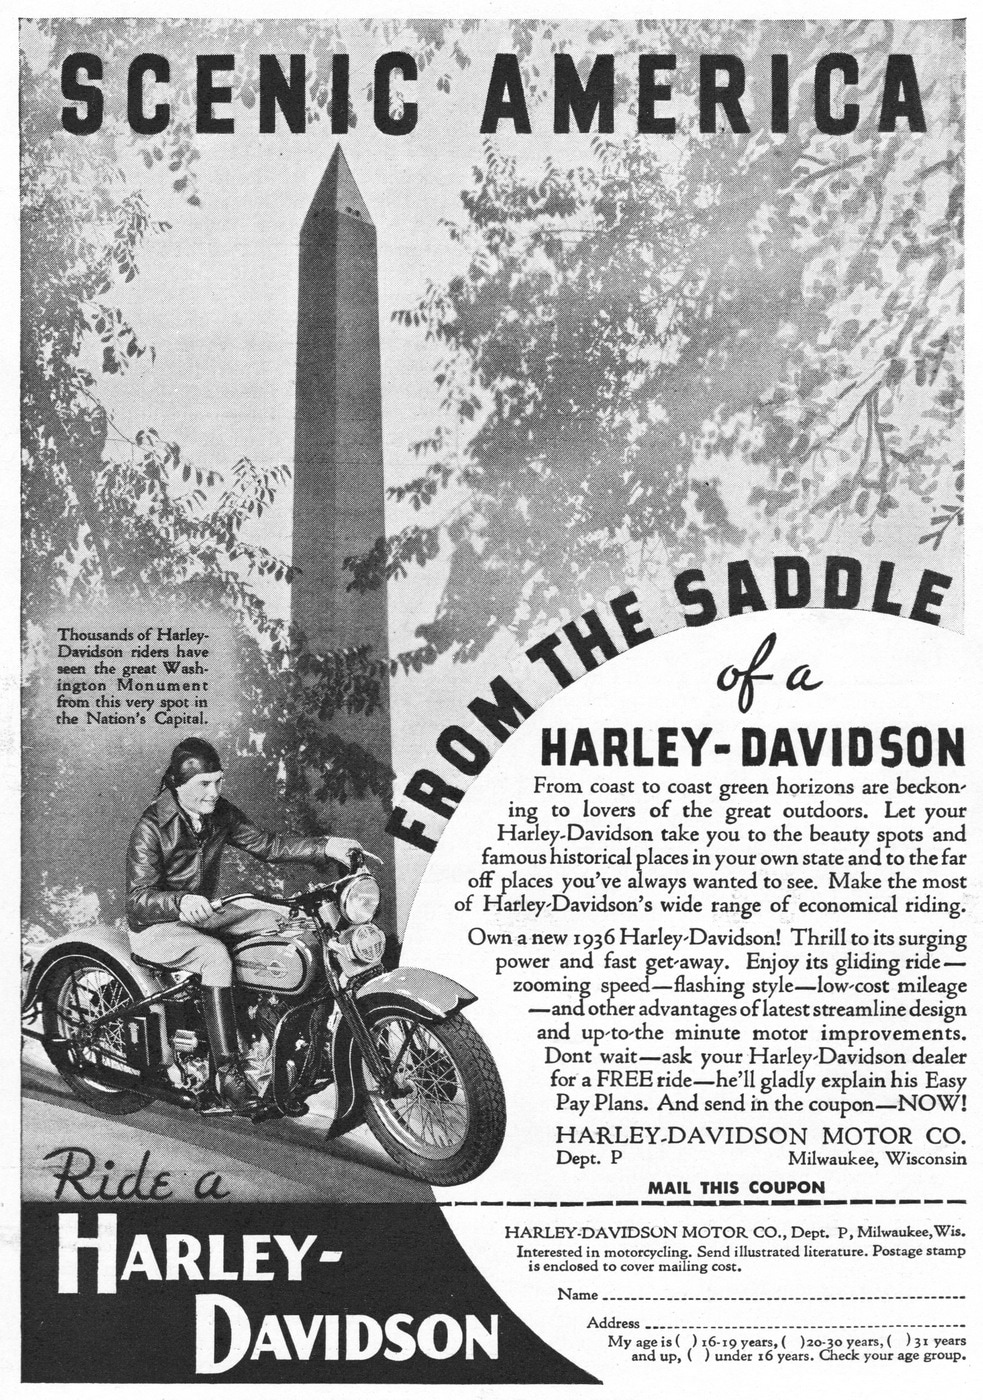 Harley-Davidson at Washington Monument